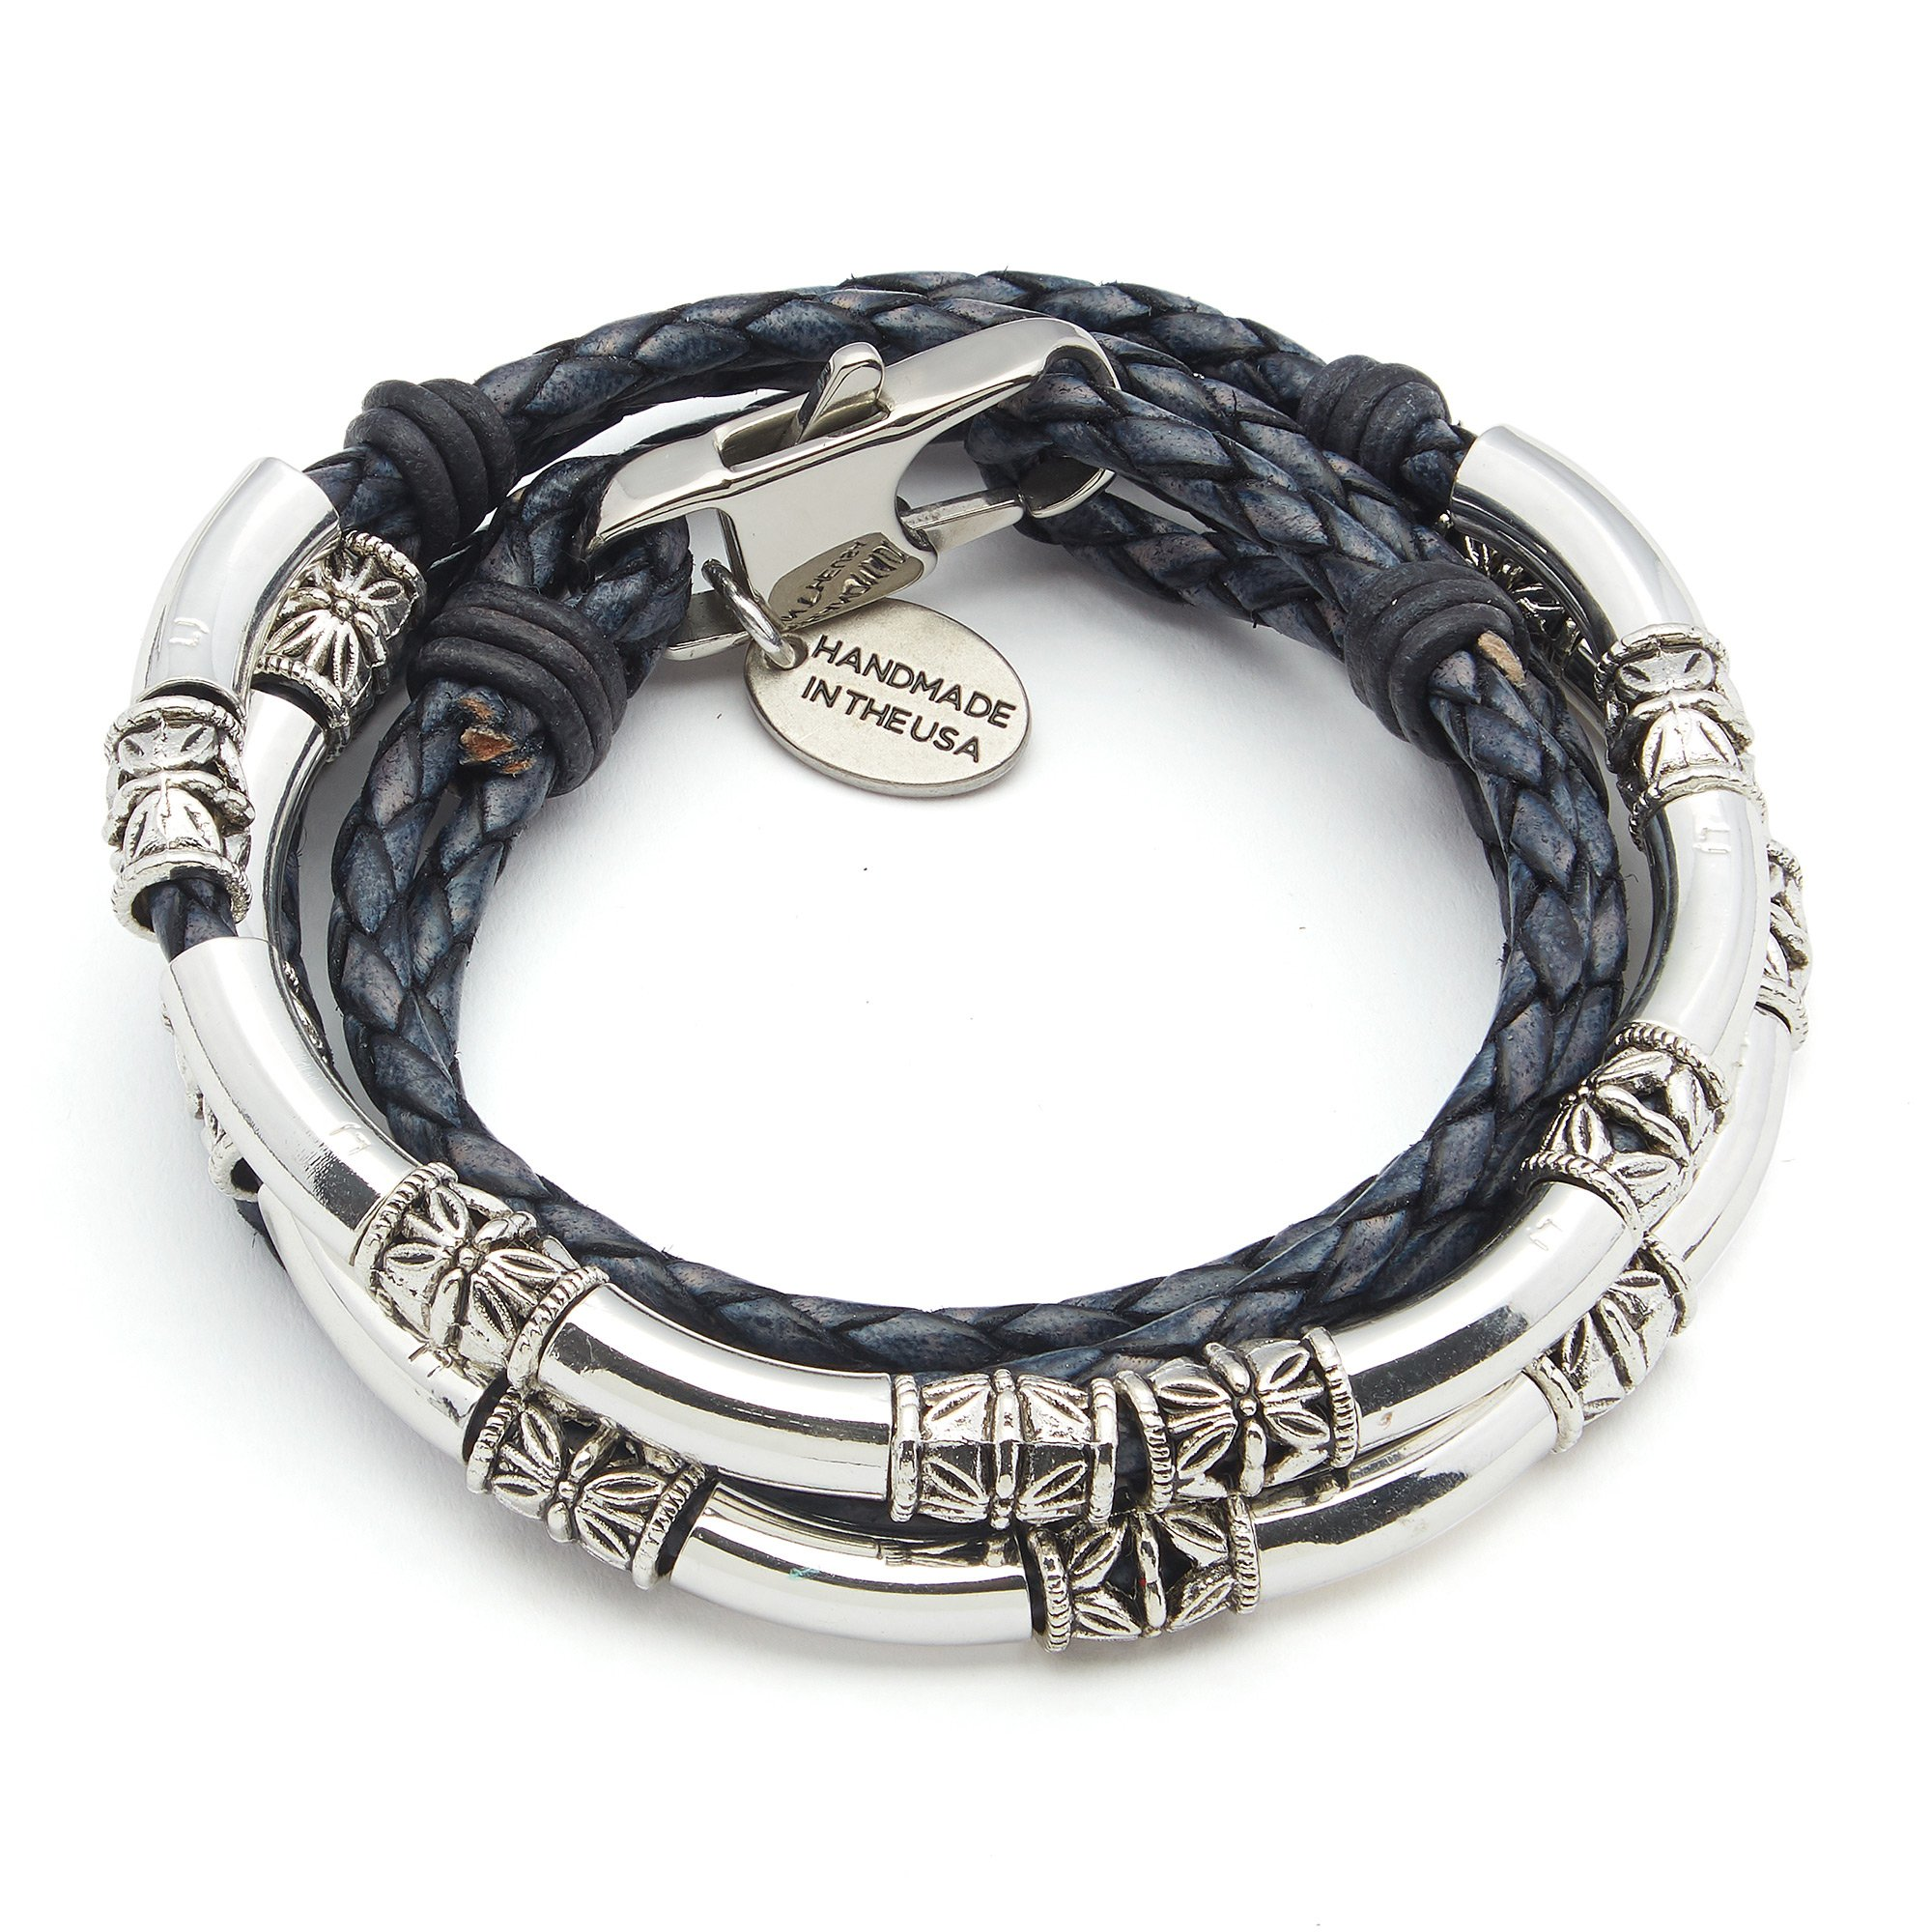 Lizzy James Mini Maxi Silver Plated 2 Strand Braided Leather Wrap Bracelet in Natural Pacific Blue Leather (Medium)